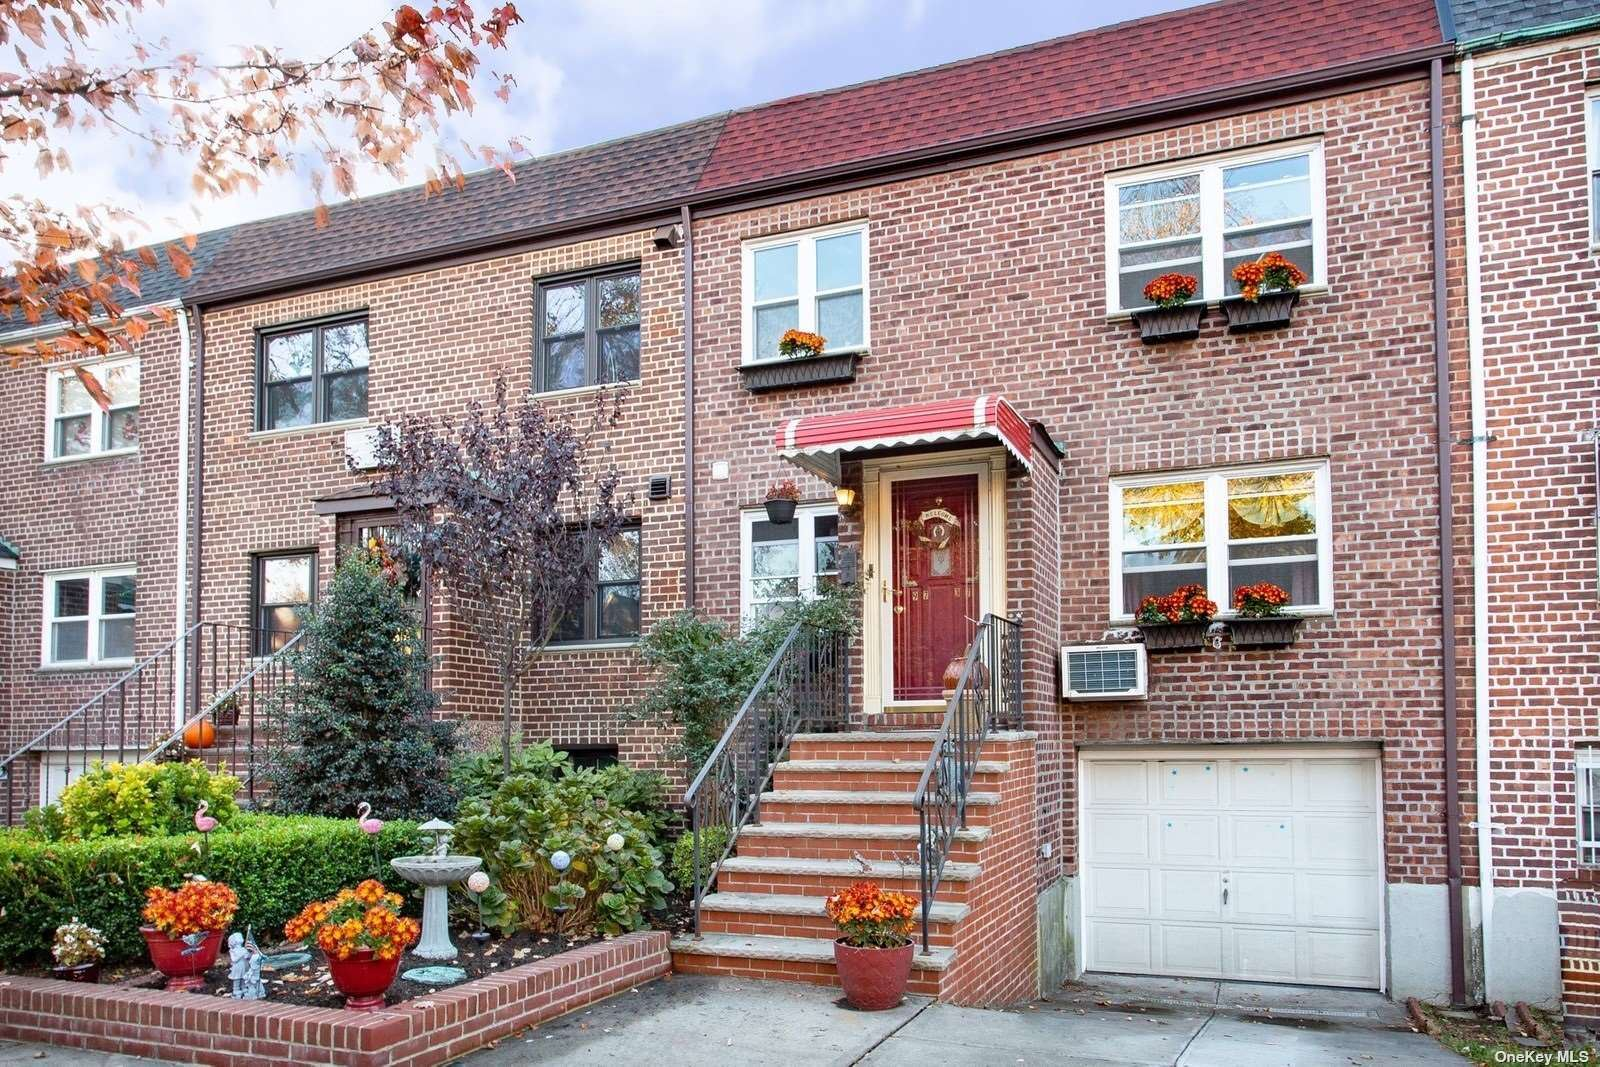 97-37 72 Drive, Forest Hills, NY 11375 - MLS#: 3307643